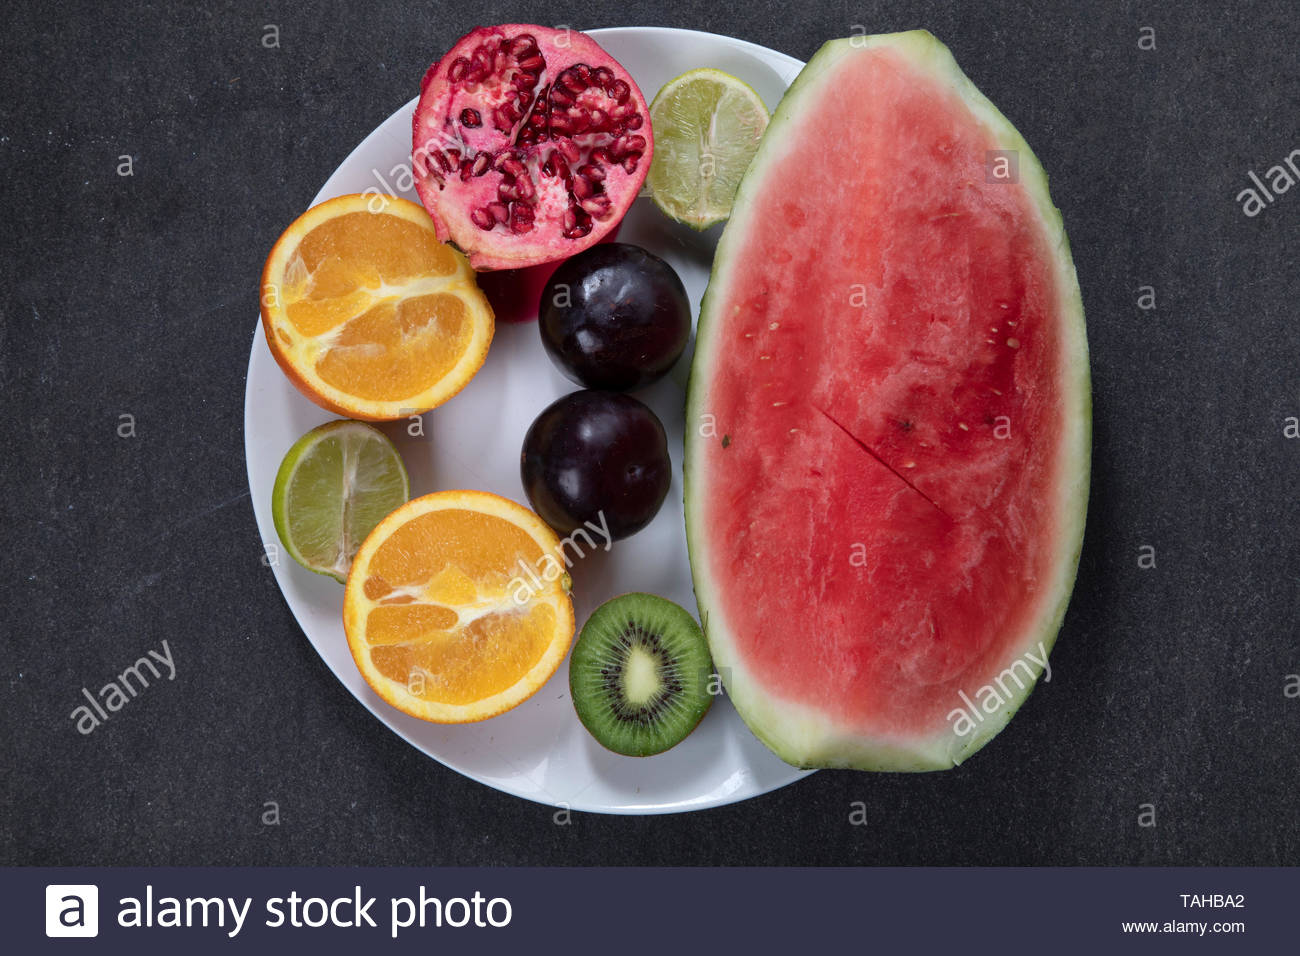 Fruit plate with watermelon, plums, kiwifruit, pomegrante, lime and oranges - Stock Image